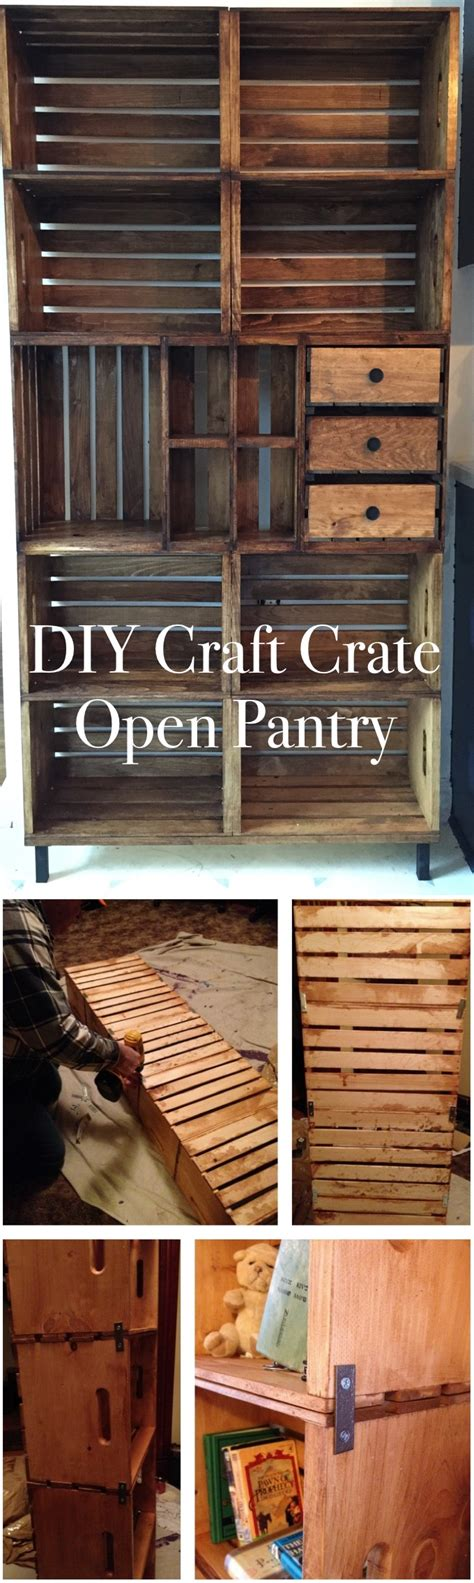 Diy-Craft-Crate-Open-Pantry